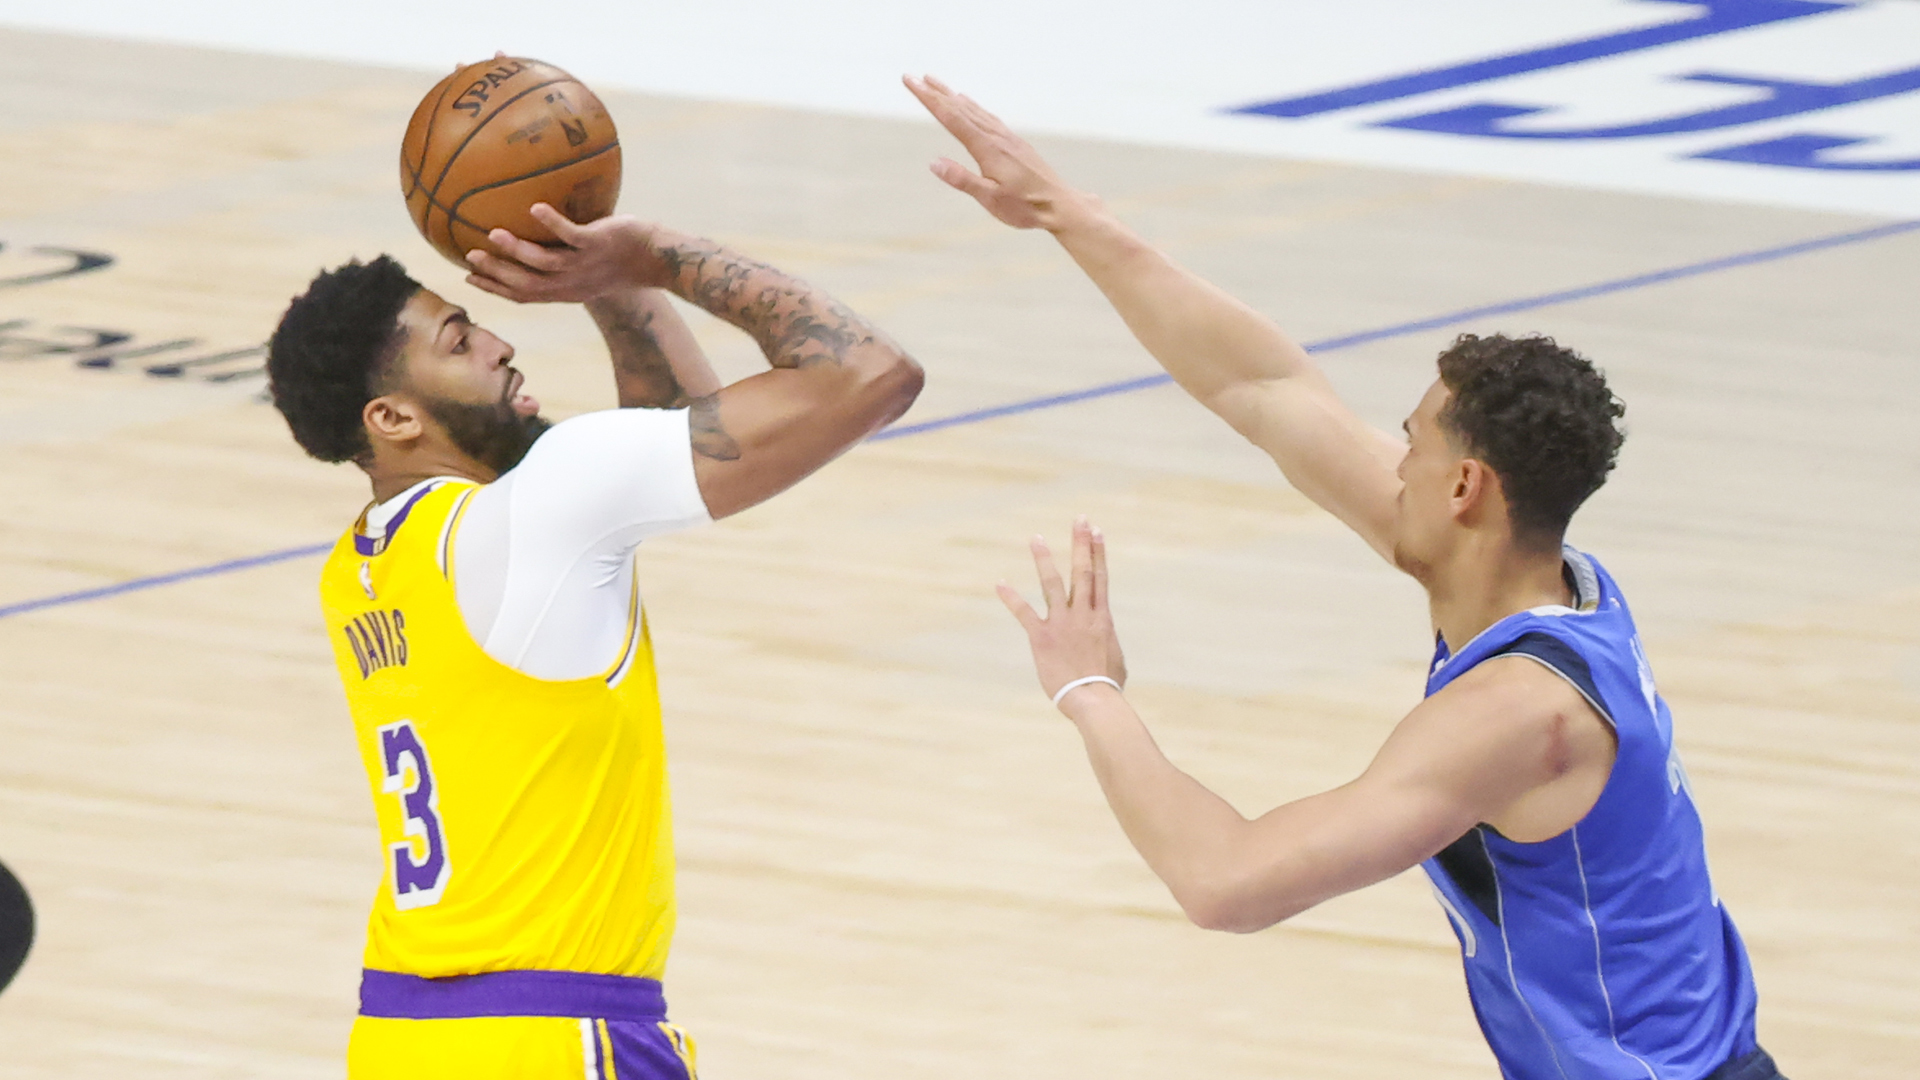 Lakers' Anthony Davis returns after 30-game absence, scores 4 points